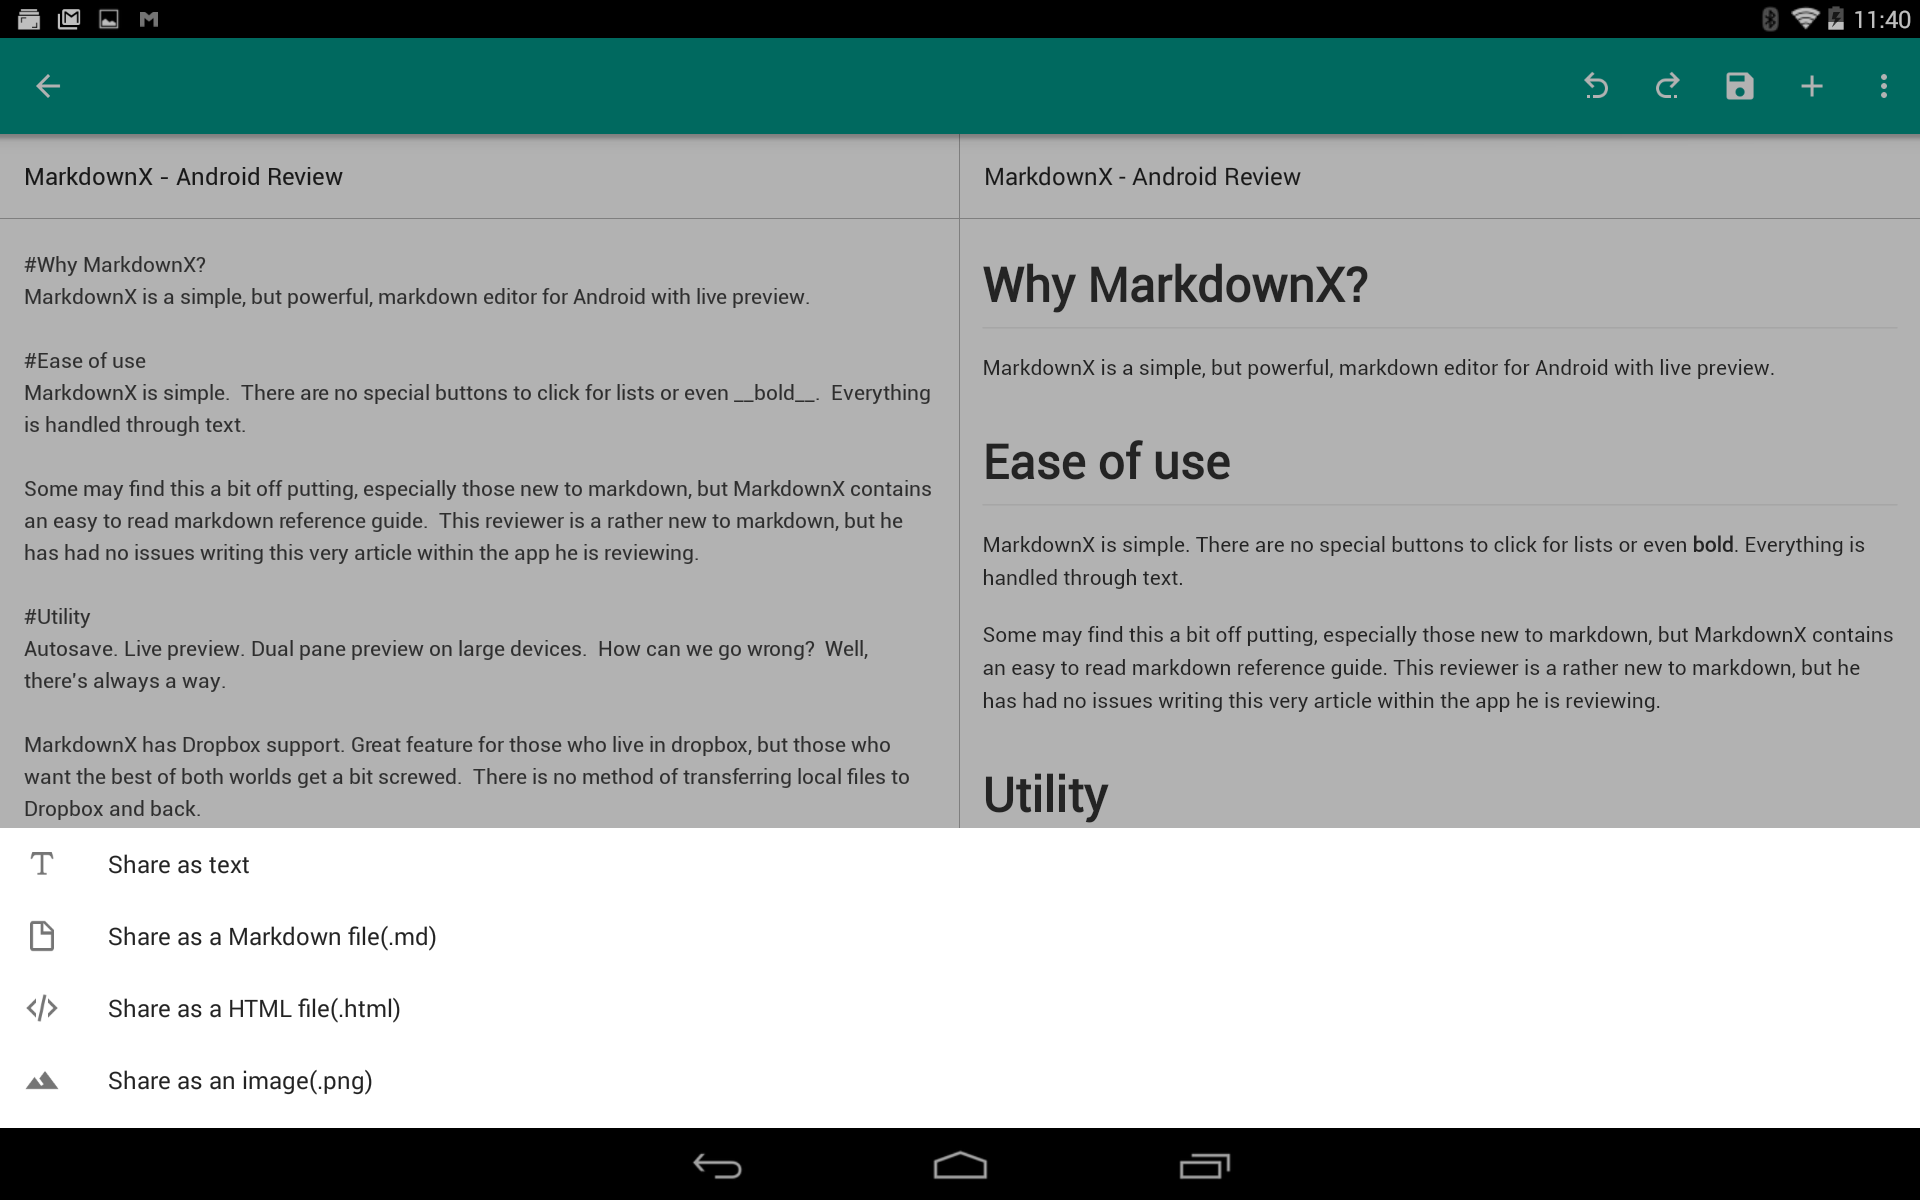 MarkdownX - Android Review